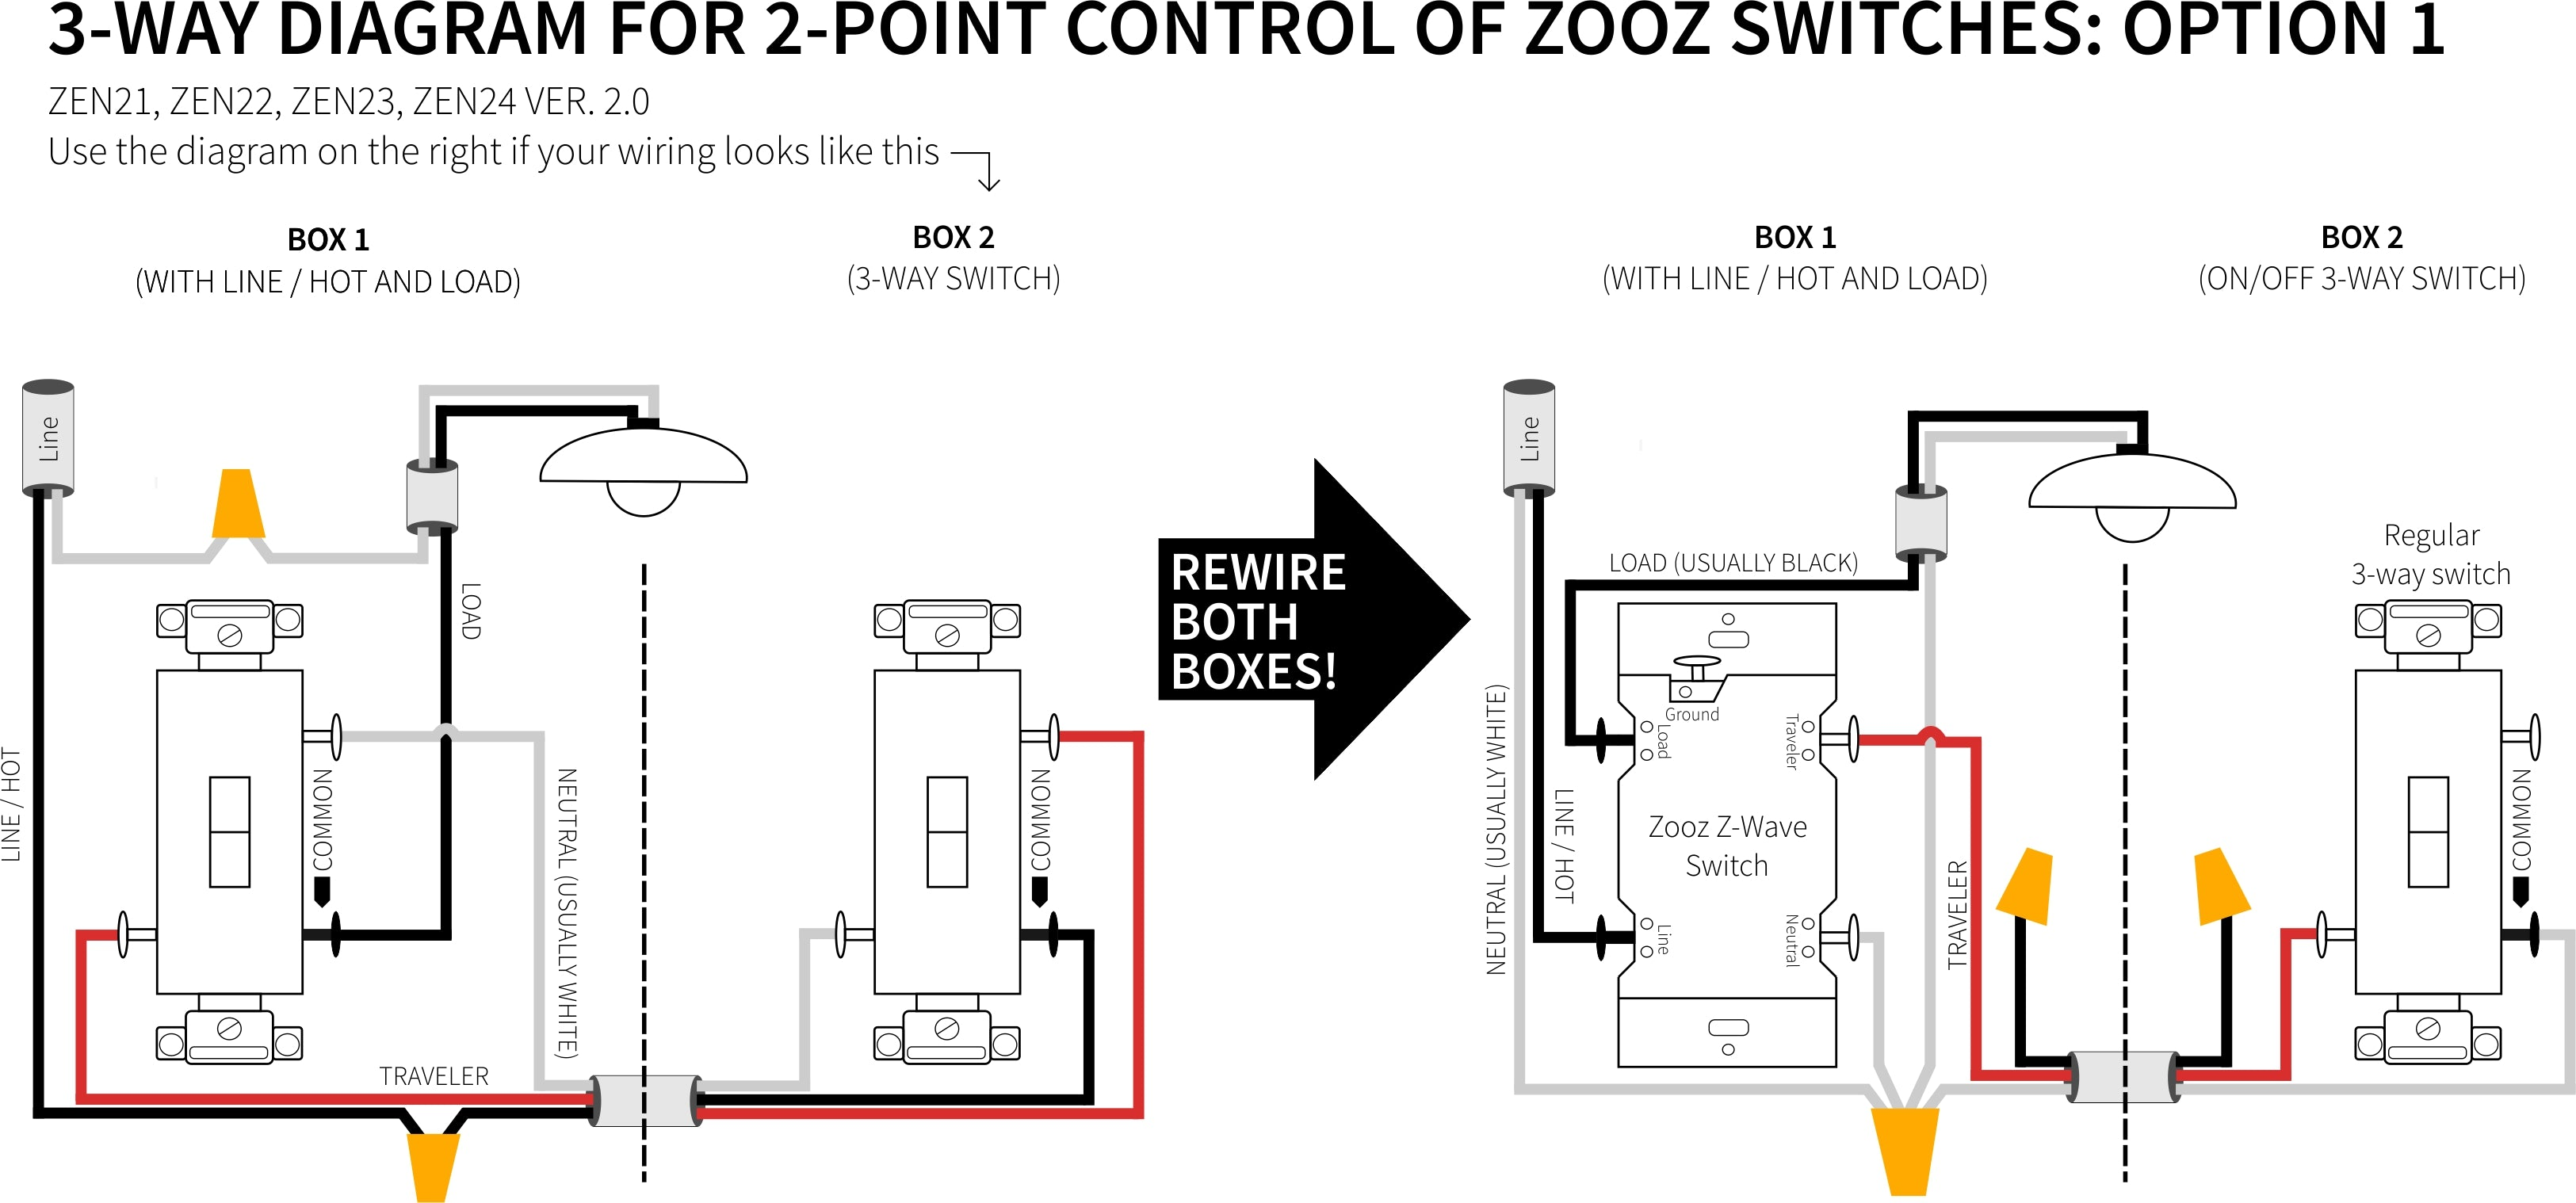 (2) Zooz Z-Wave Plus Dimmer Toggle Switch ZEN24 VER. 4.0